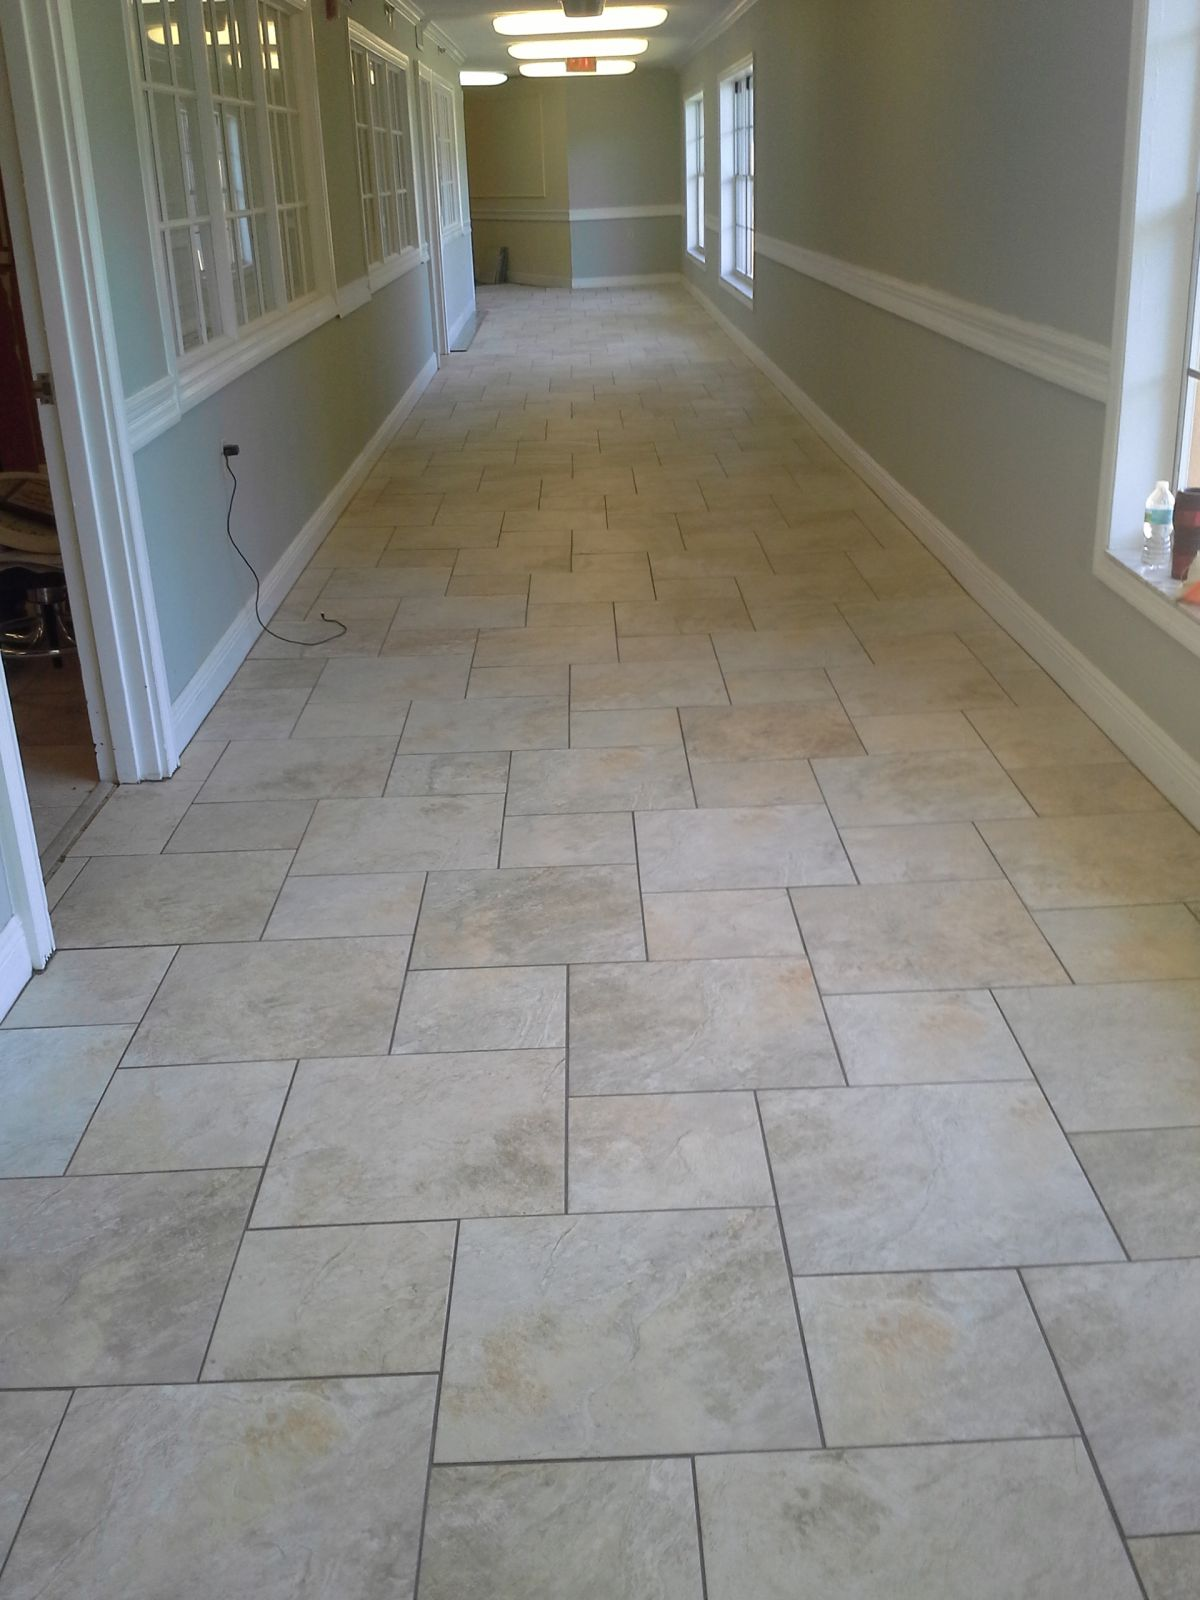 Tile installation south florida flooring contractor installation tile installation and remodeling contractor 003 dailygadgetfo Choice Image